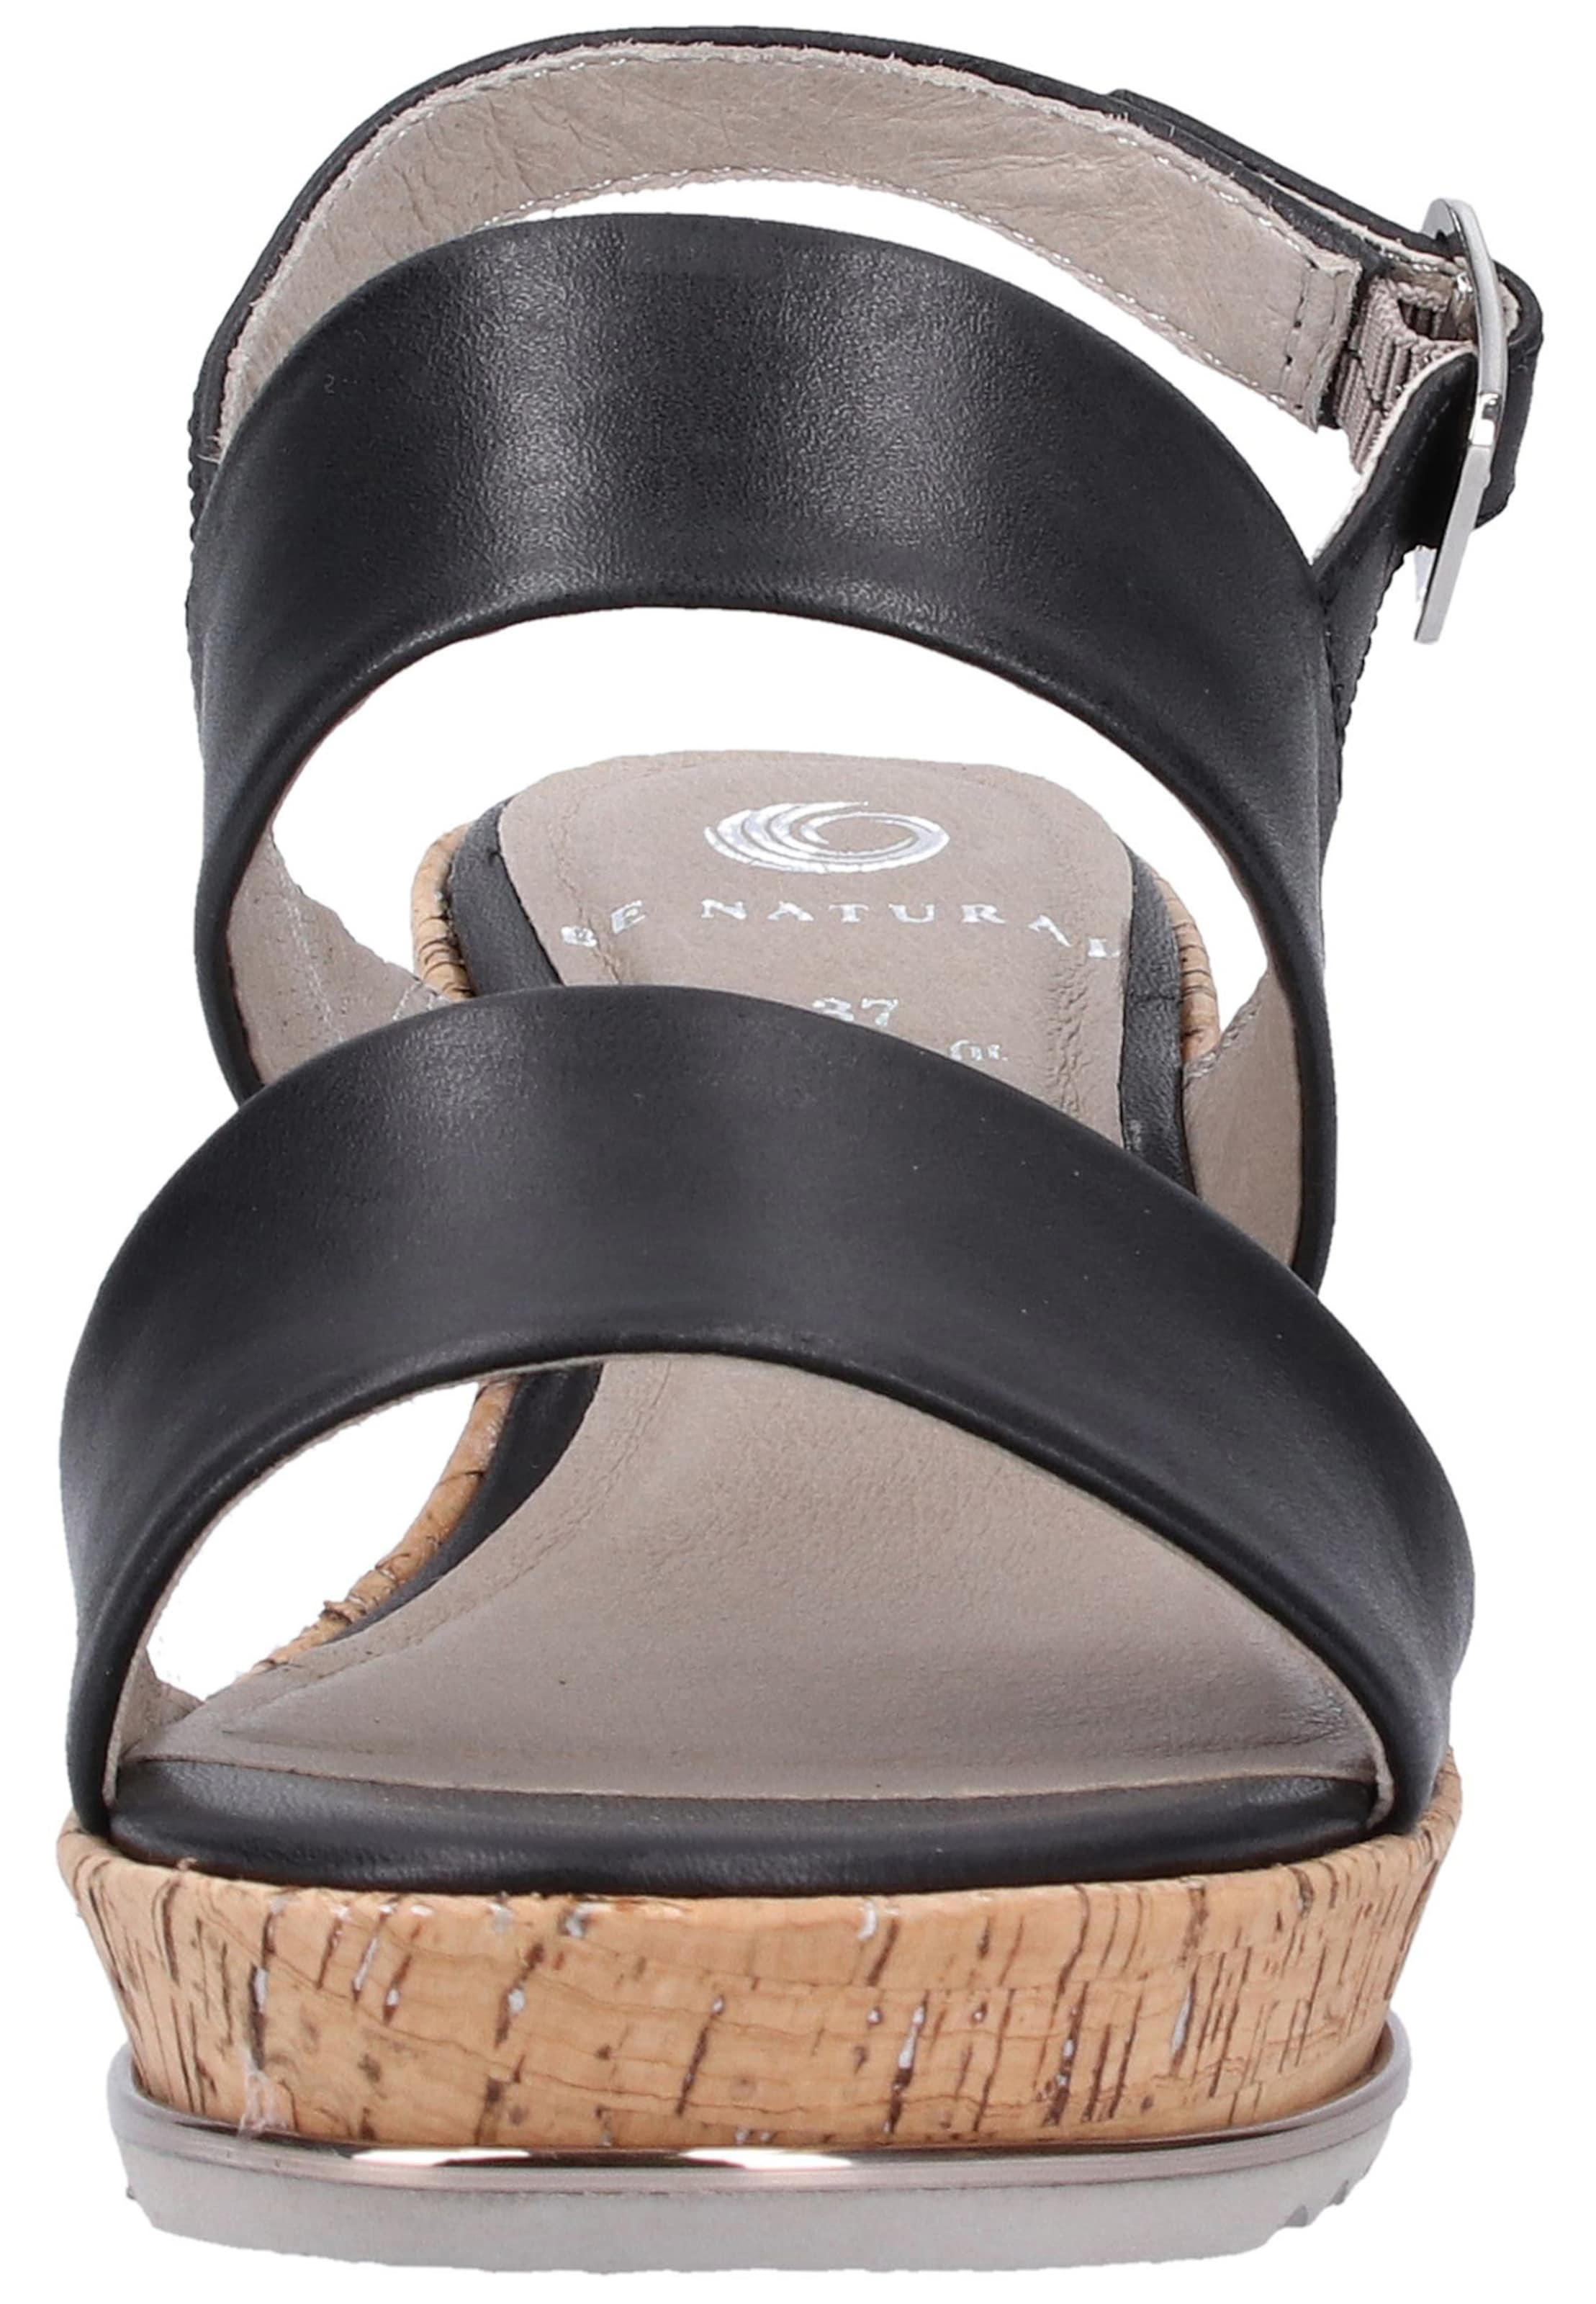 Natural In Be Sandalen Natural In Schwarz Sandalen In Be Be Natural Schwarz Sandalen EYWH9DI2